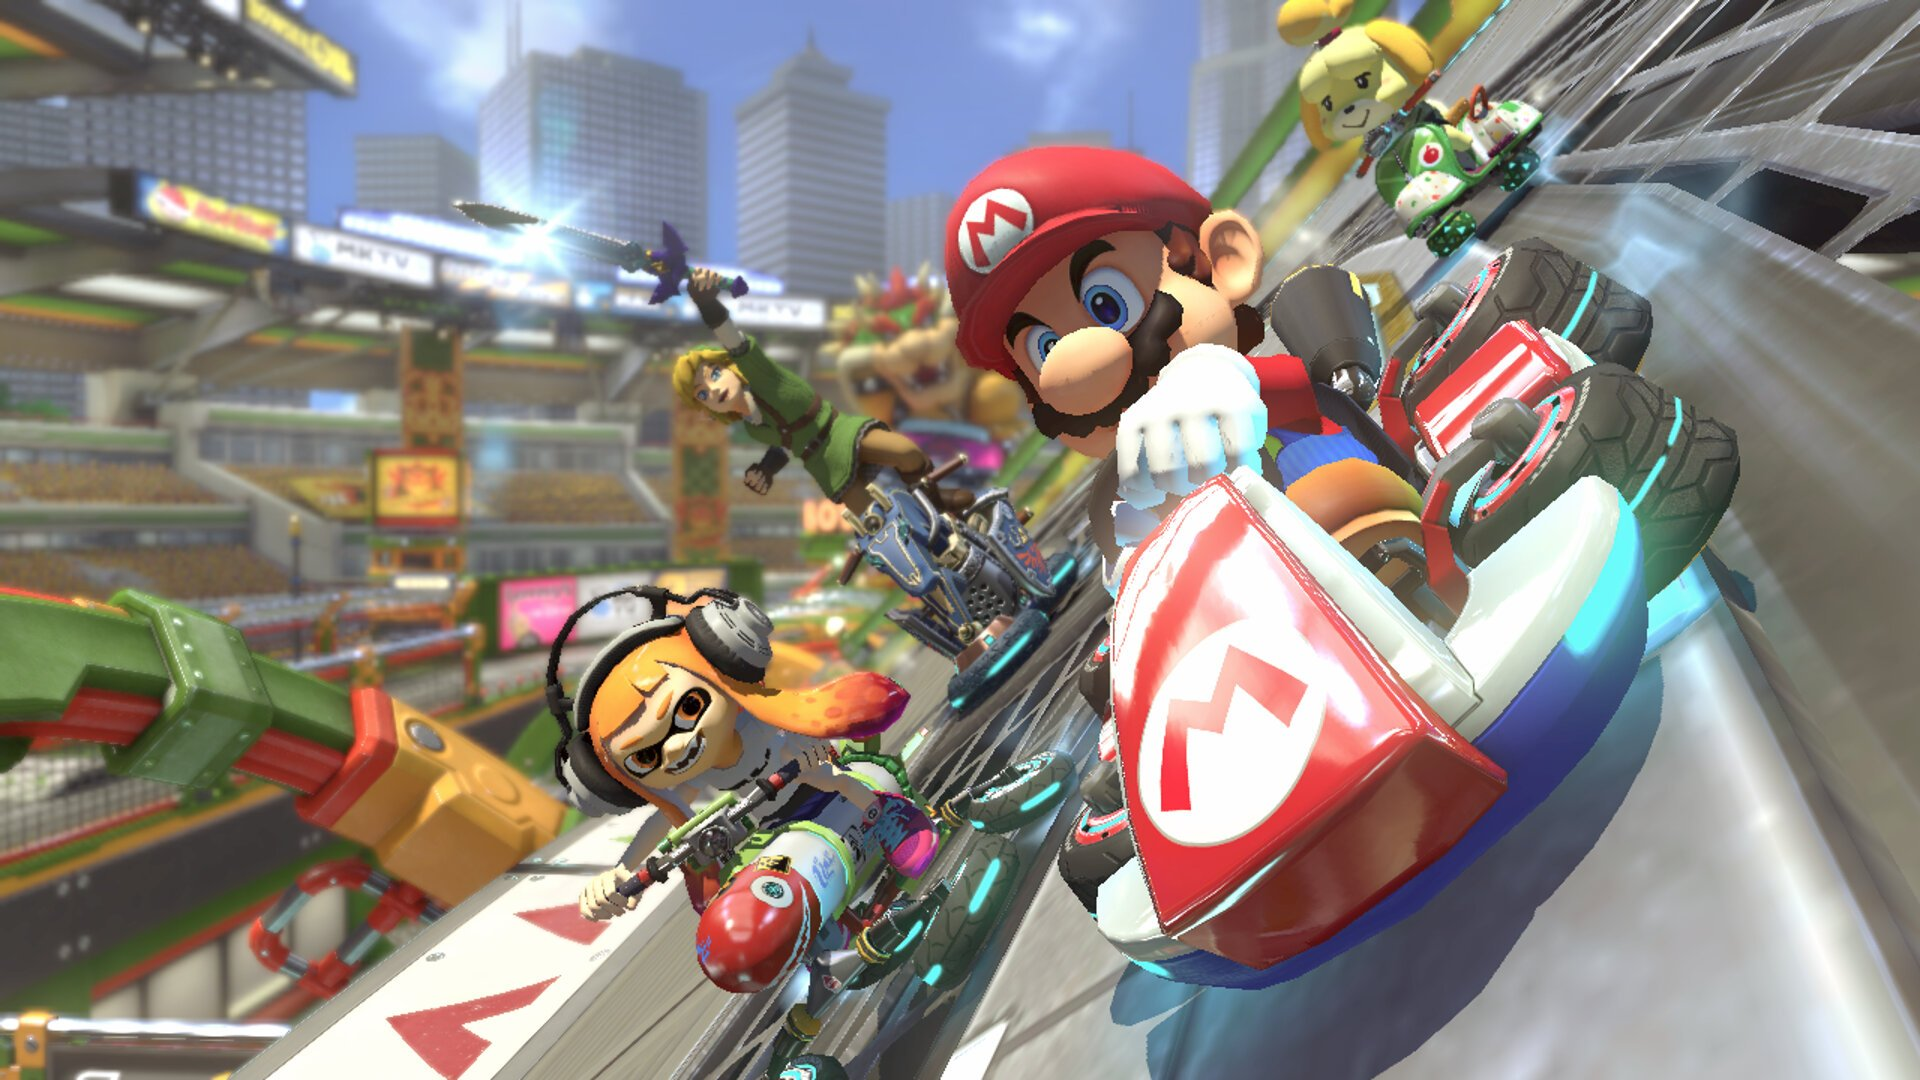 Modojo | When Will Mario Kart 8 Deluxe Arrive On The Nintendo eShop?